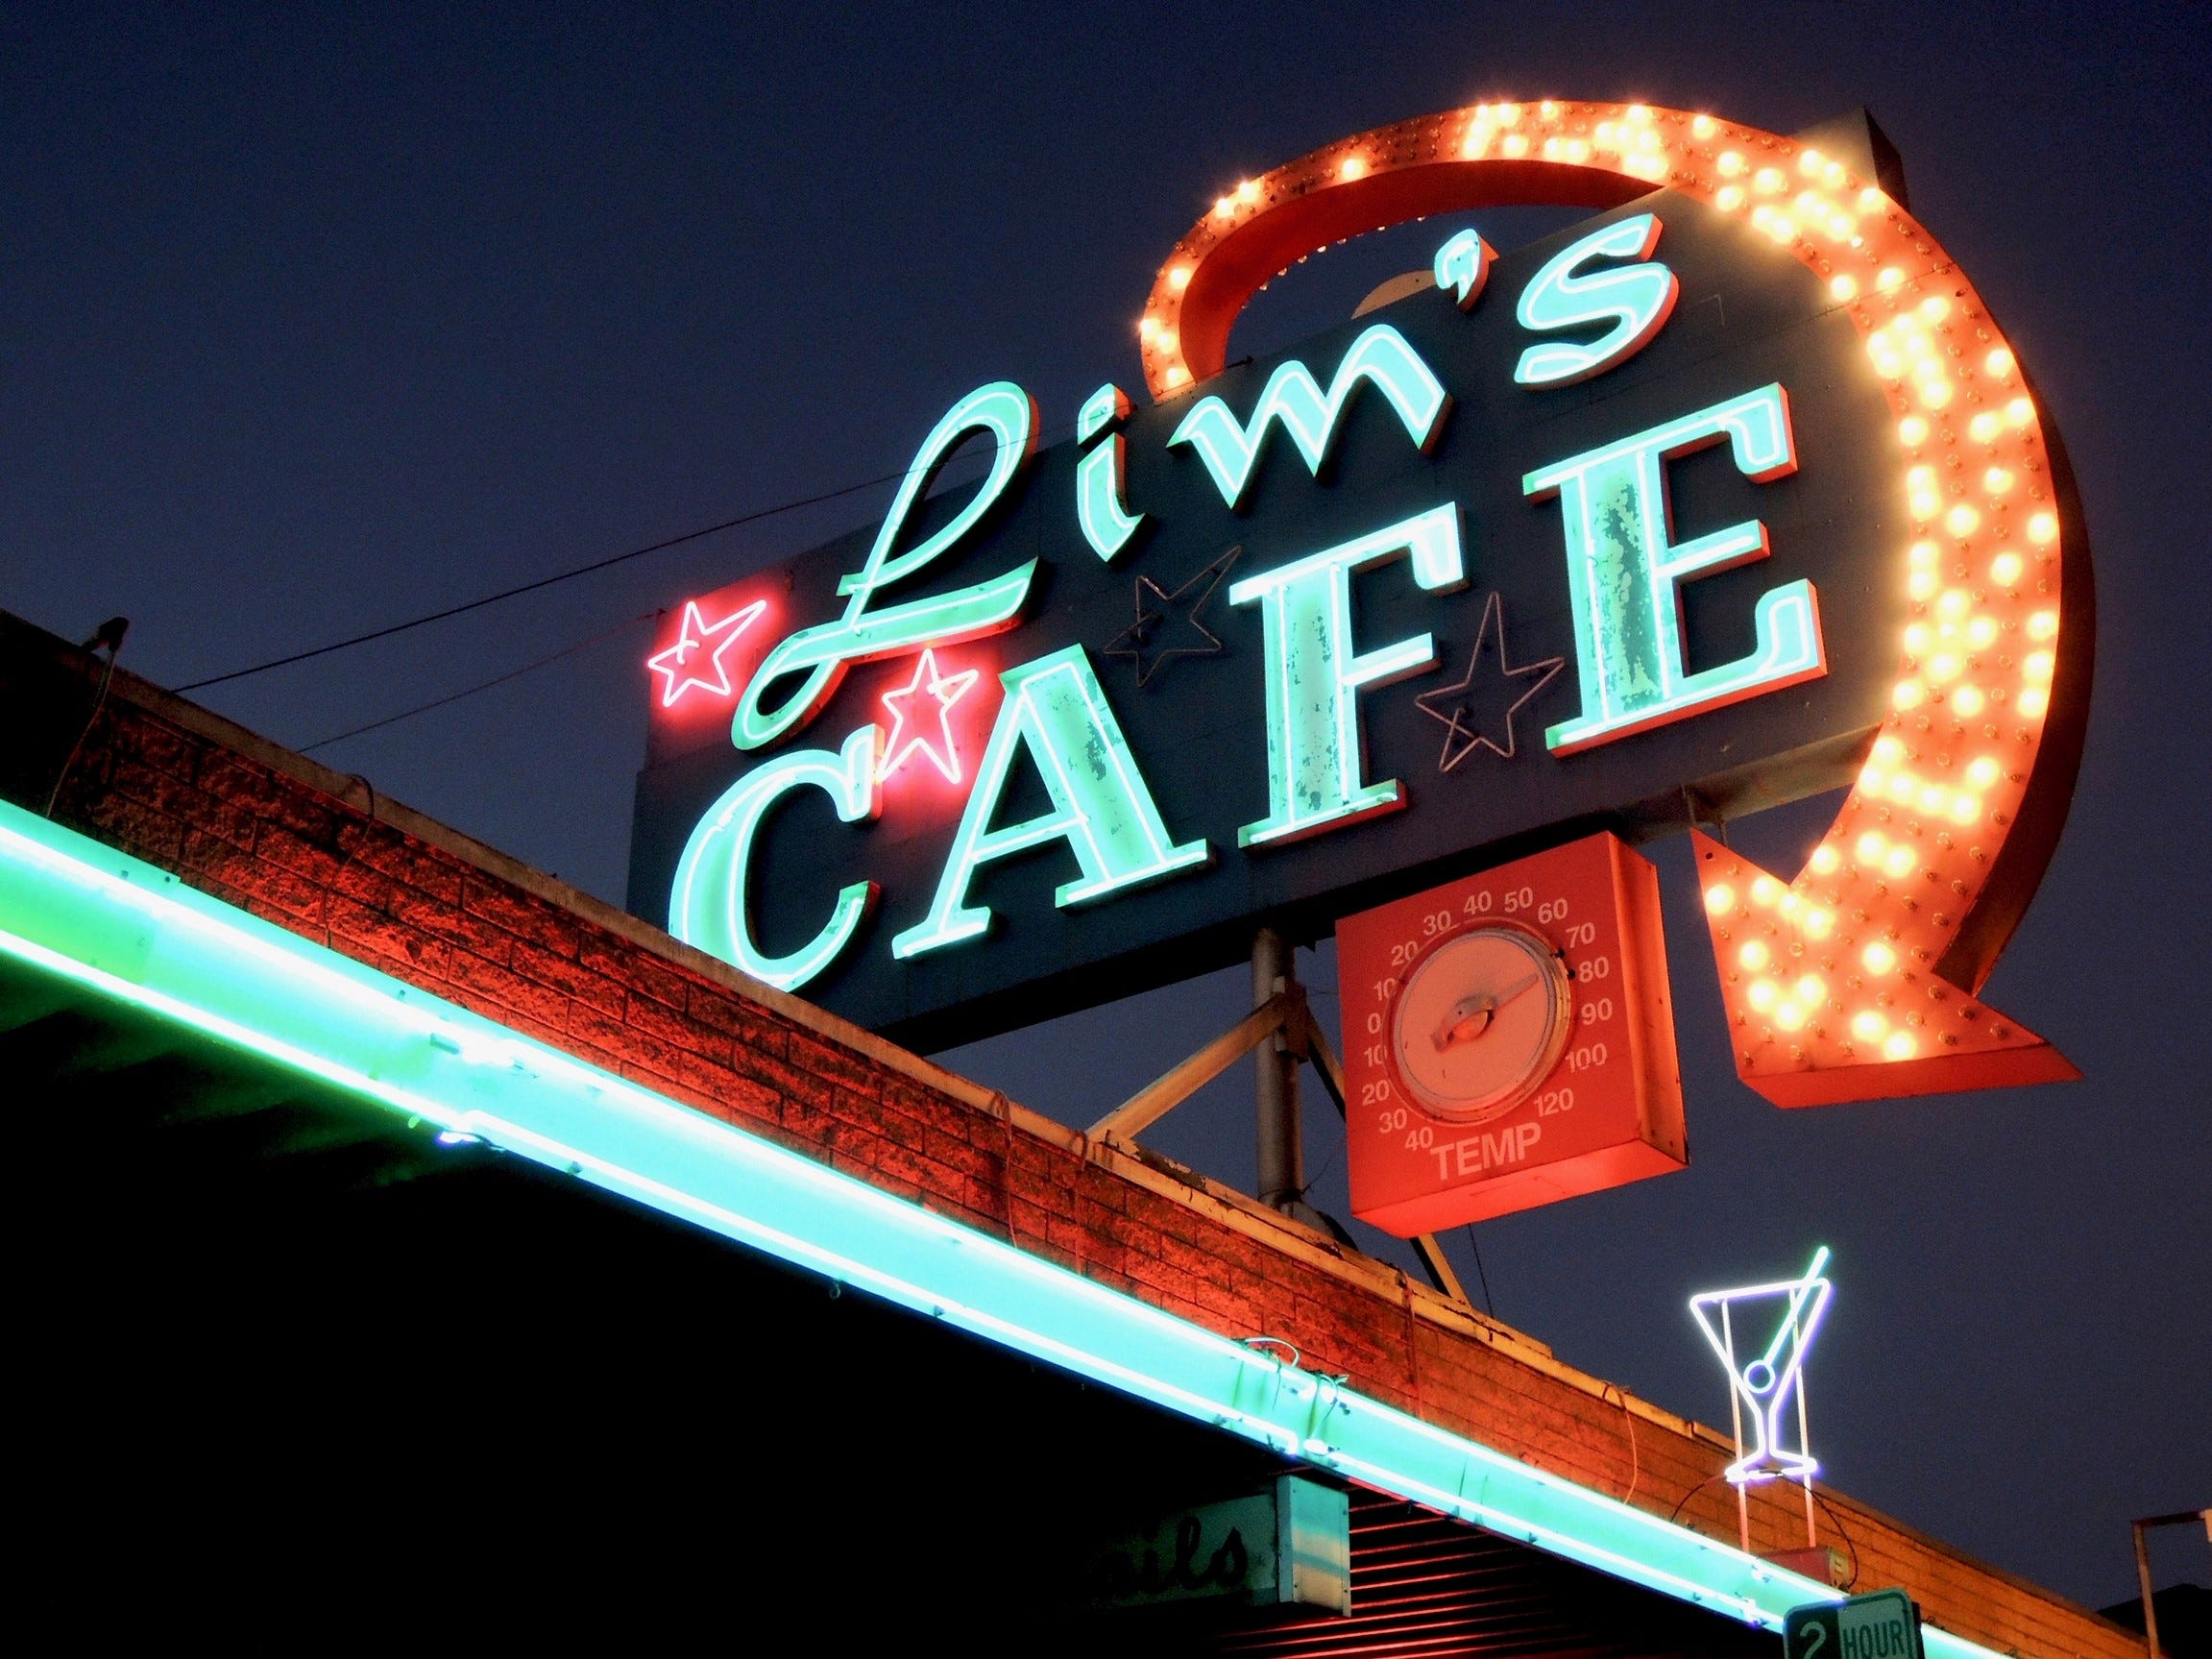 The iconic Lim's neon sign on North Market Street in Redding.